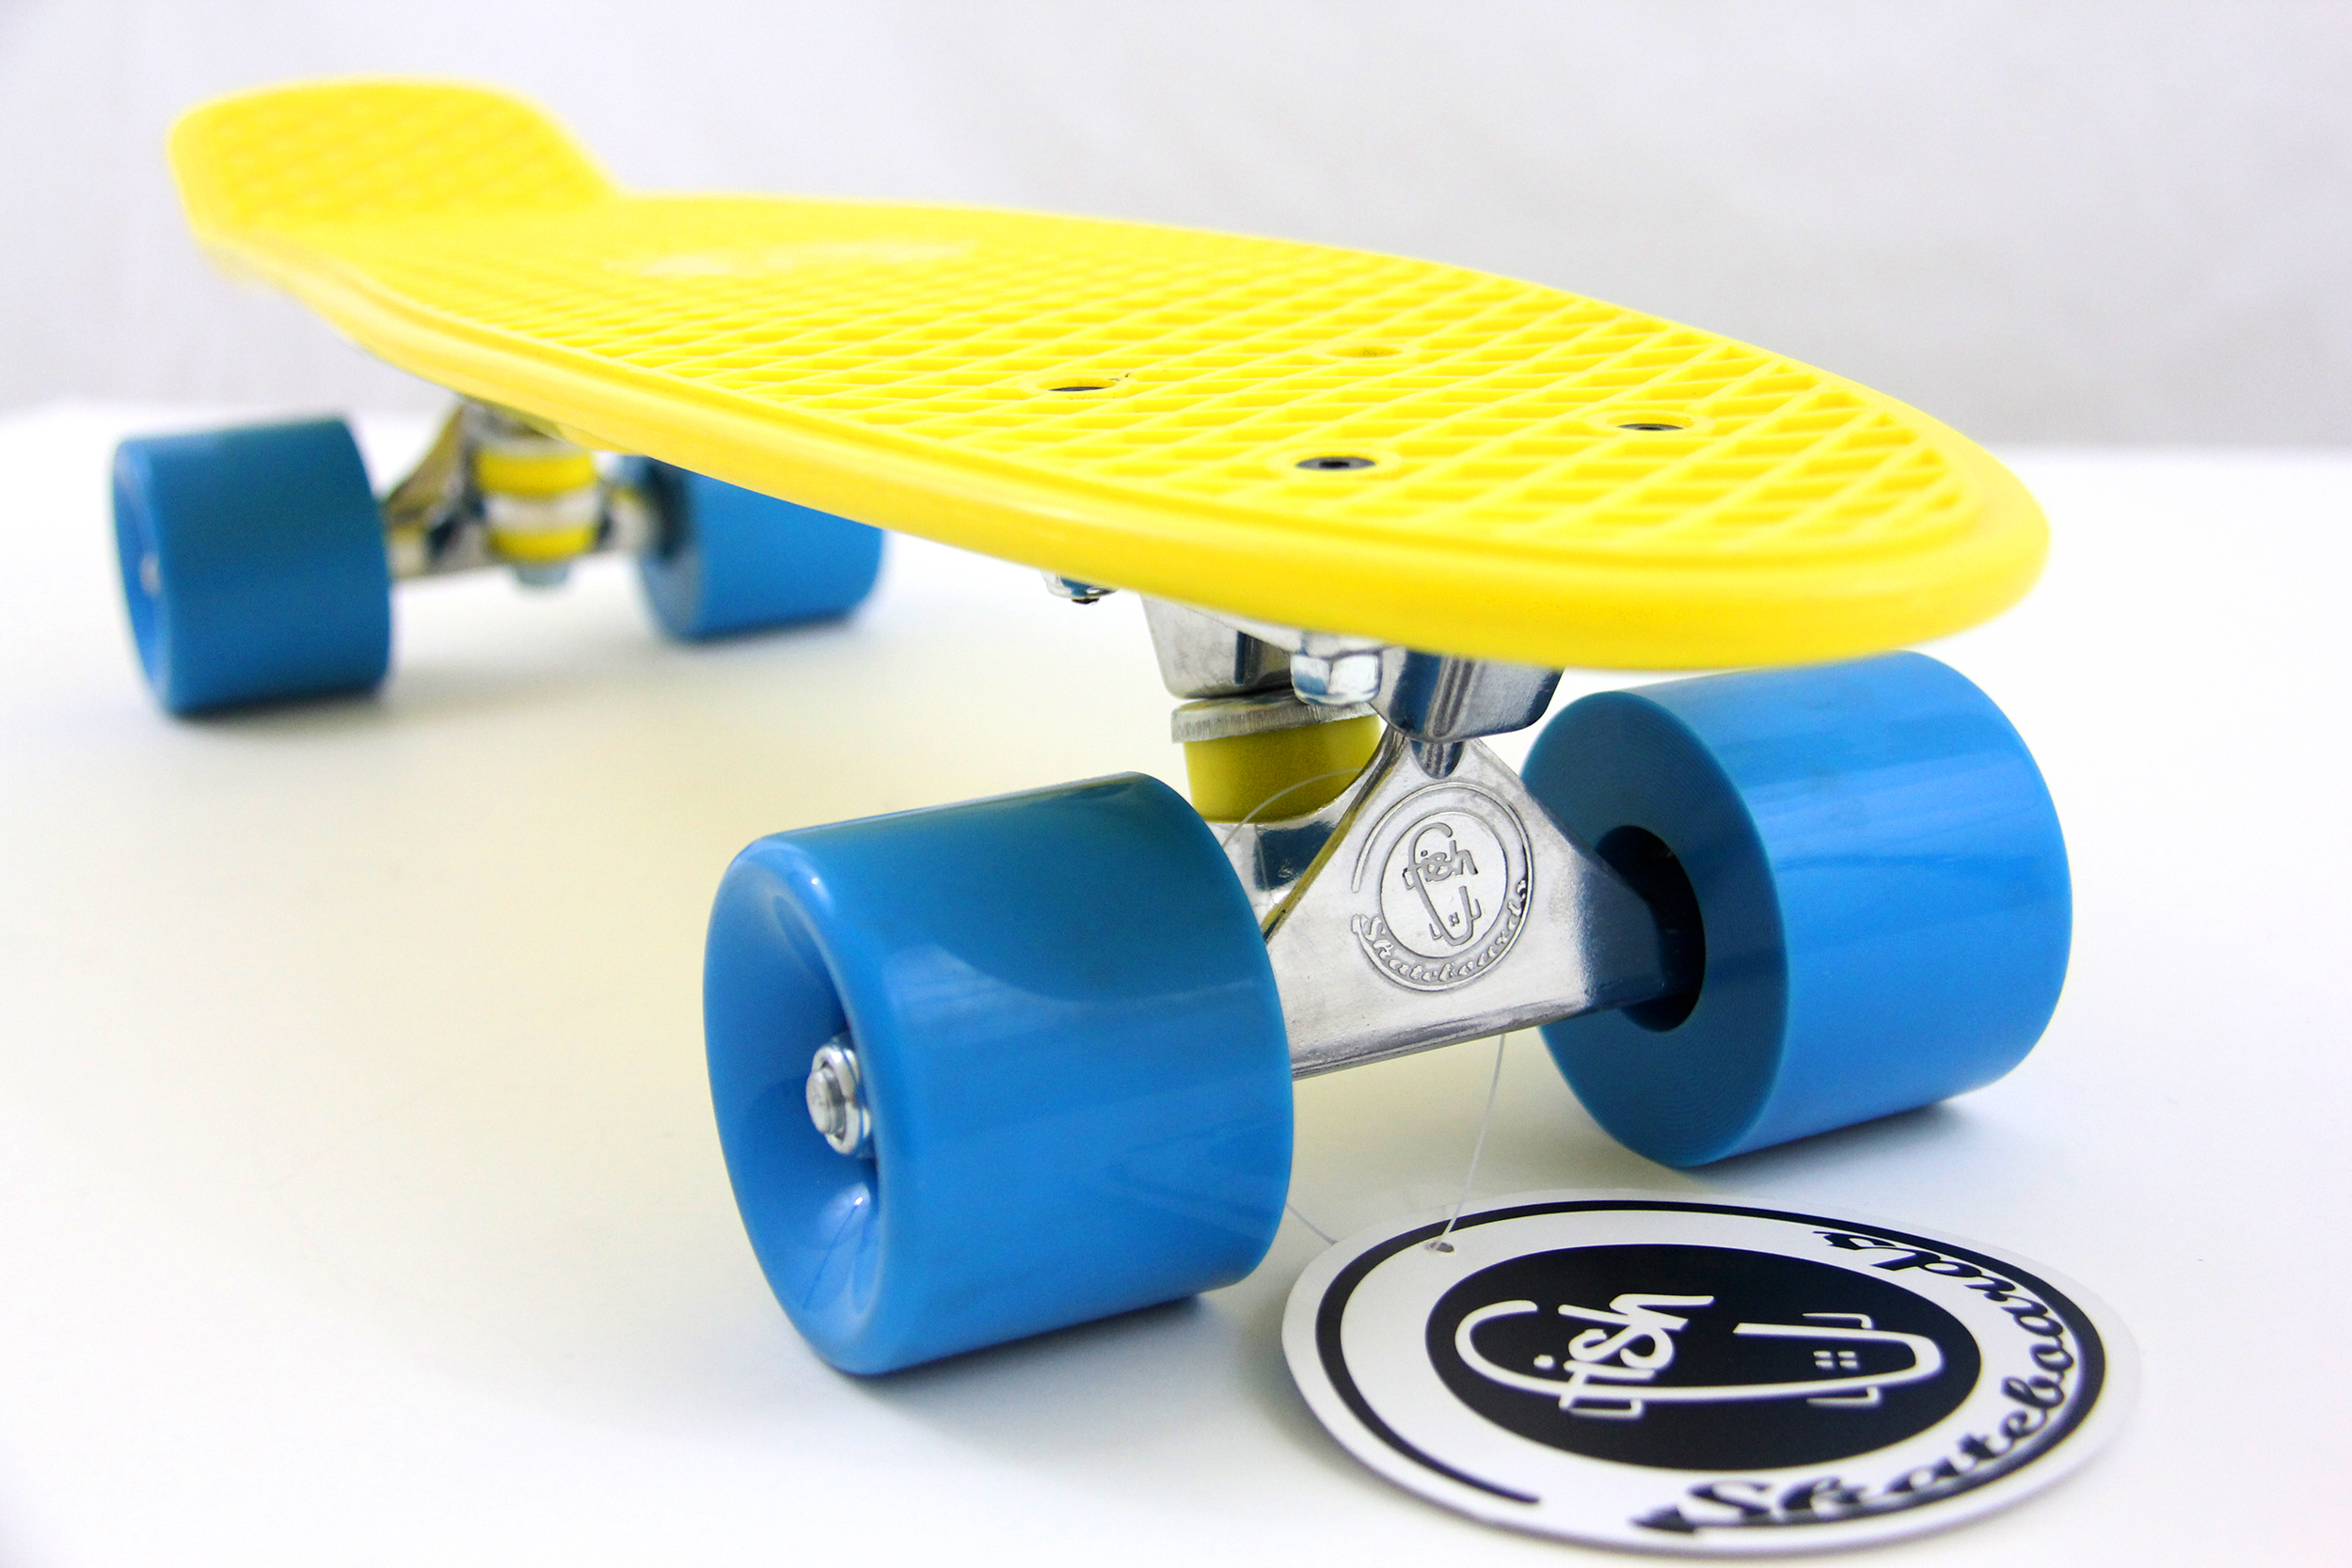 fish skateboard yellow 22 retro cruiser blue wheel silver. Black Bedroom Furniture Sets. Home Design Ideas